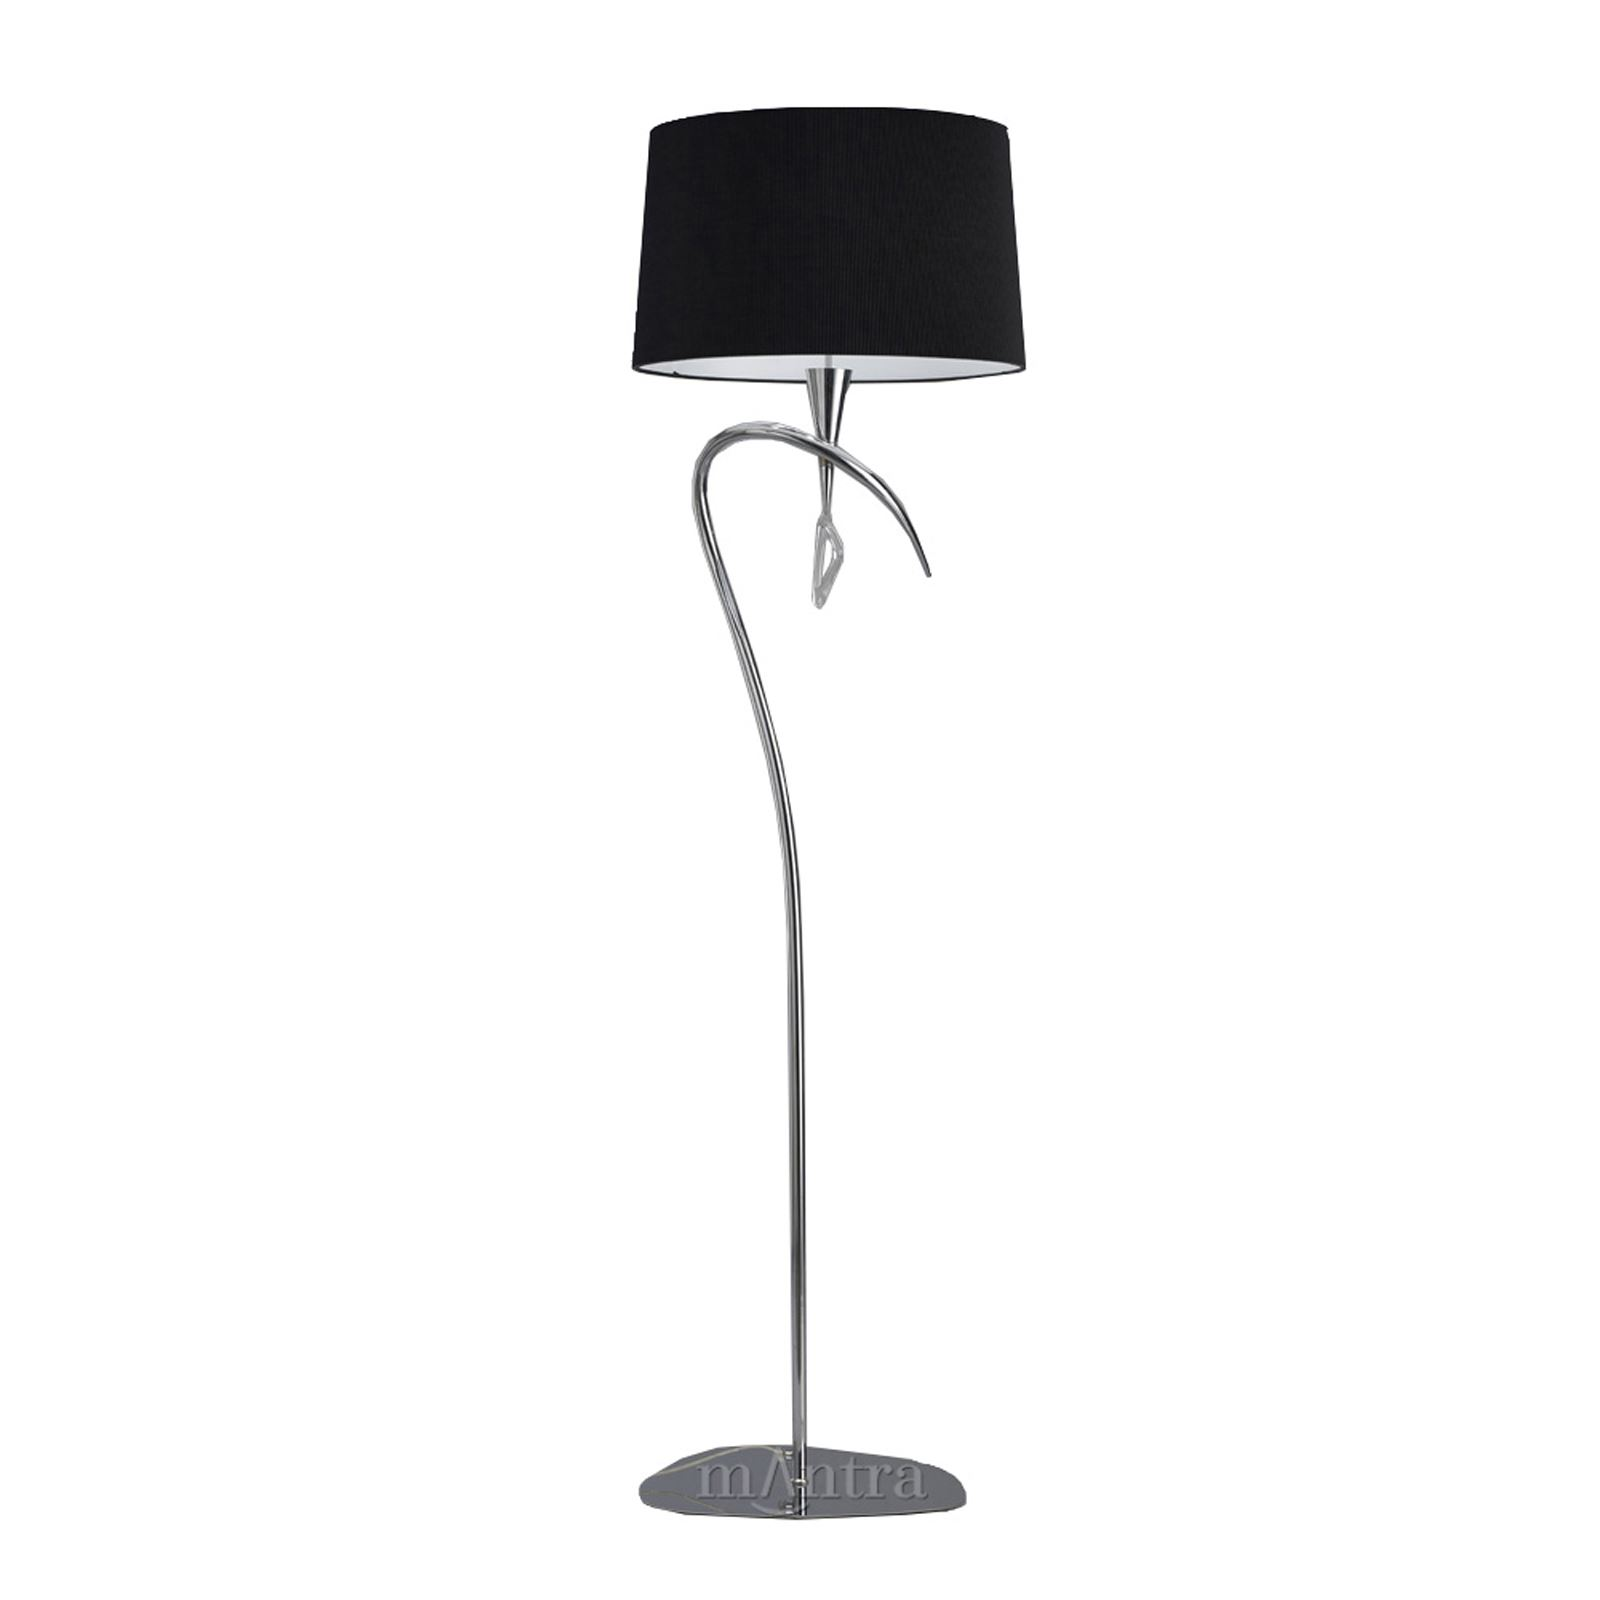 Mara Floor Lamp 1 Light Polished Chrome/Black